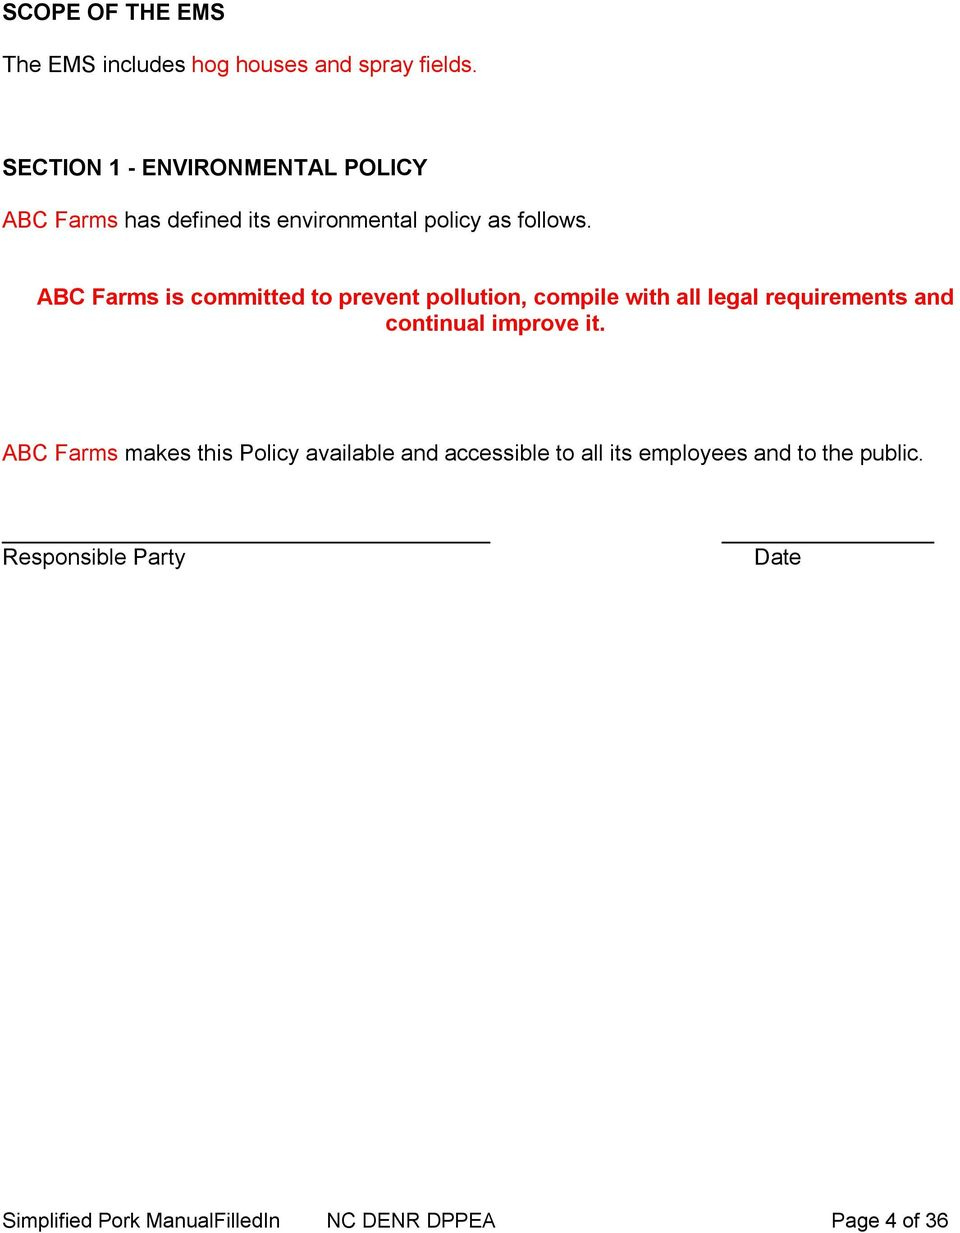 ABC Farms is committed to prevent pollution, compile with all legal requirements and continual improve it.